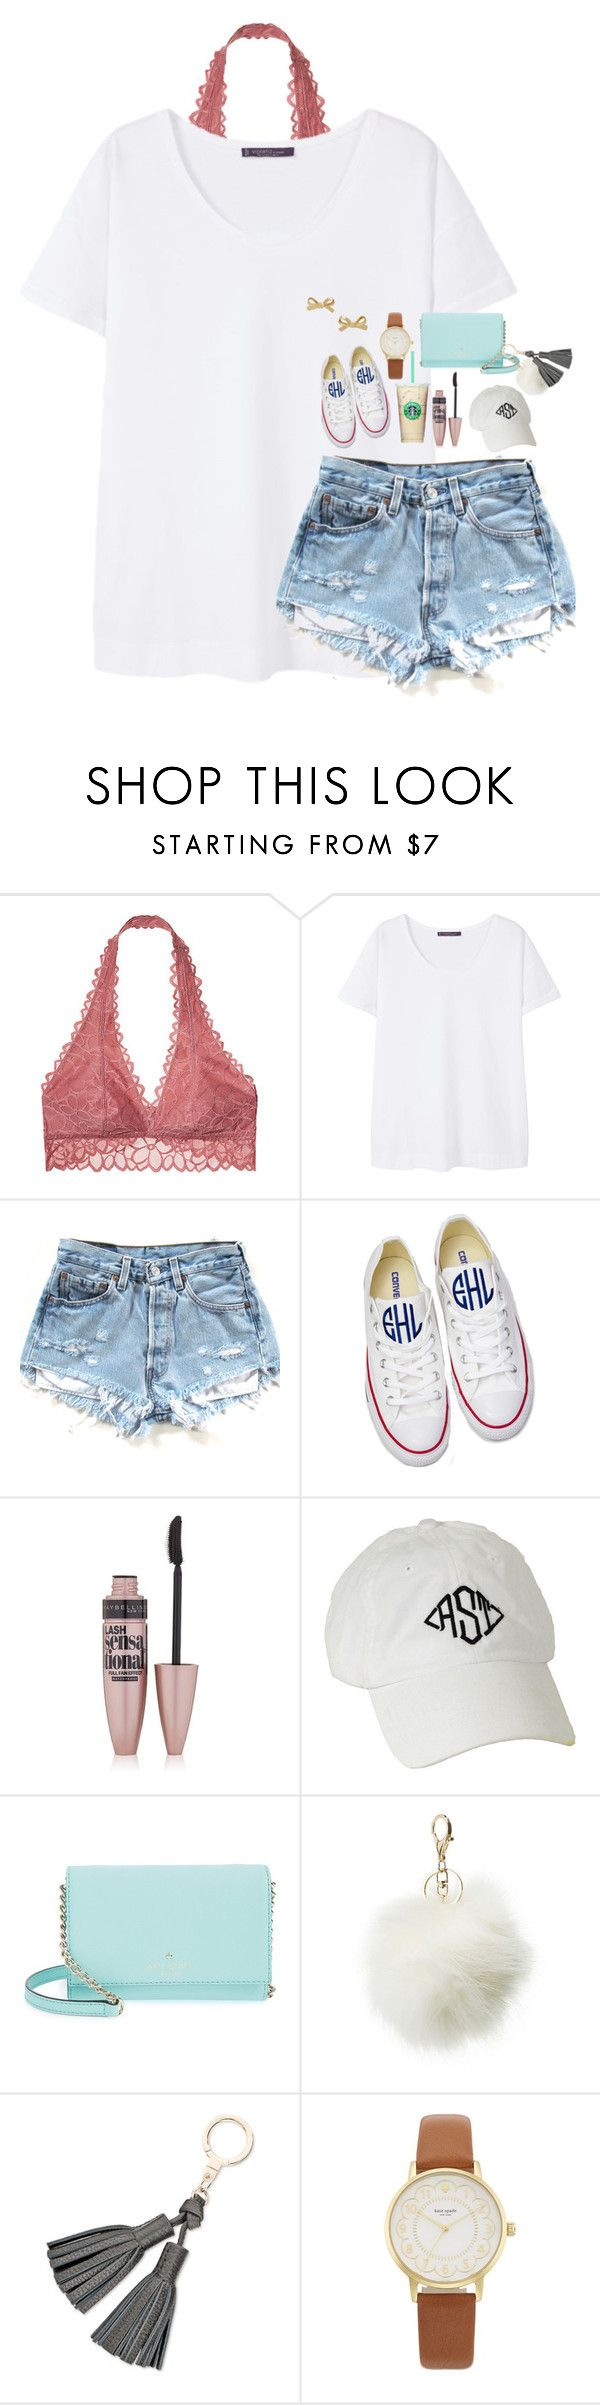 """Contest day 4// shopping"" by pandapeeper ❤ liked on Polyvore featuring Victoria's Secret, MANGO, Converse, Maybelline, Kate Spade, Charlotte Russe and lucysbeachcontest"